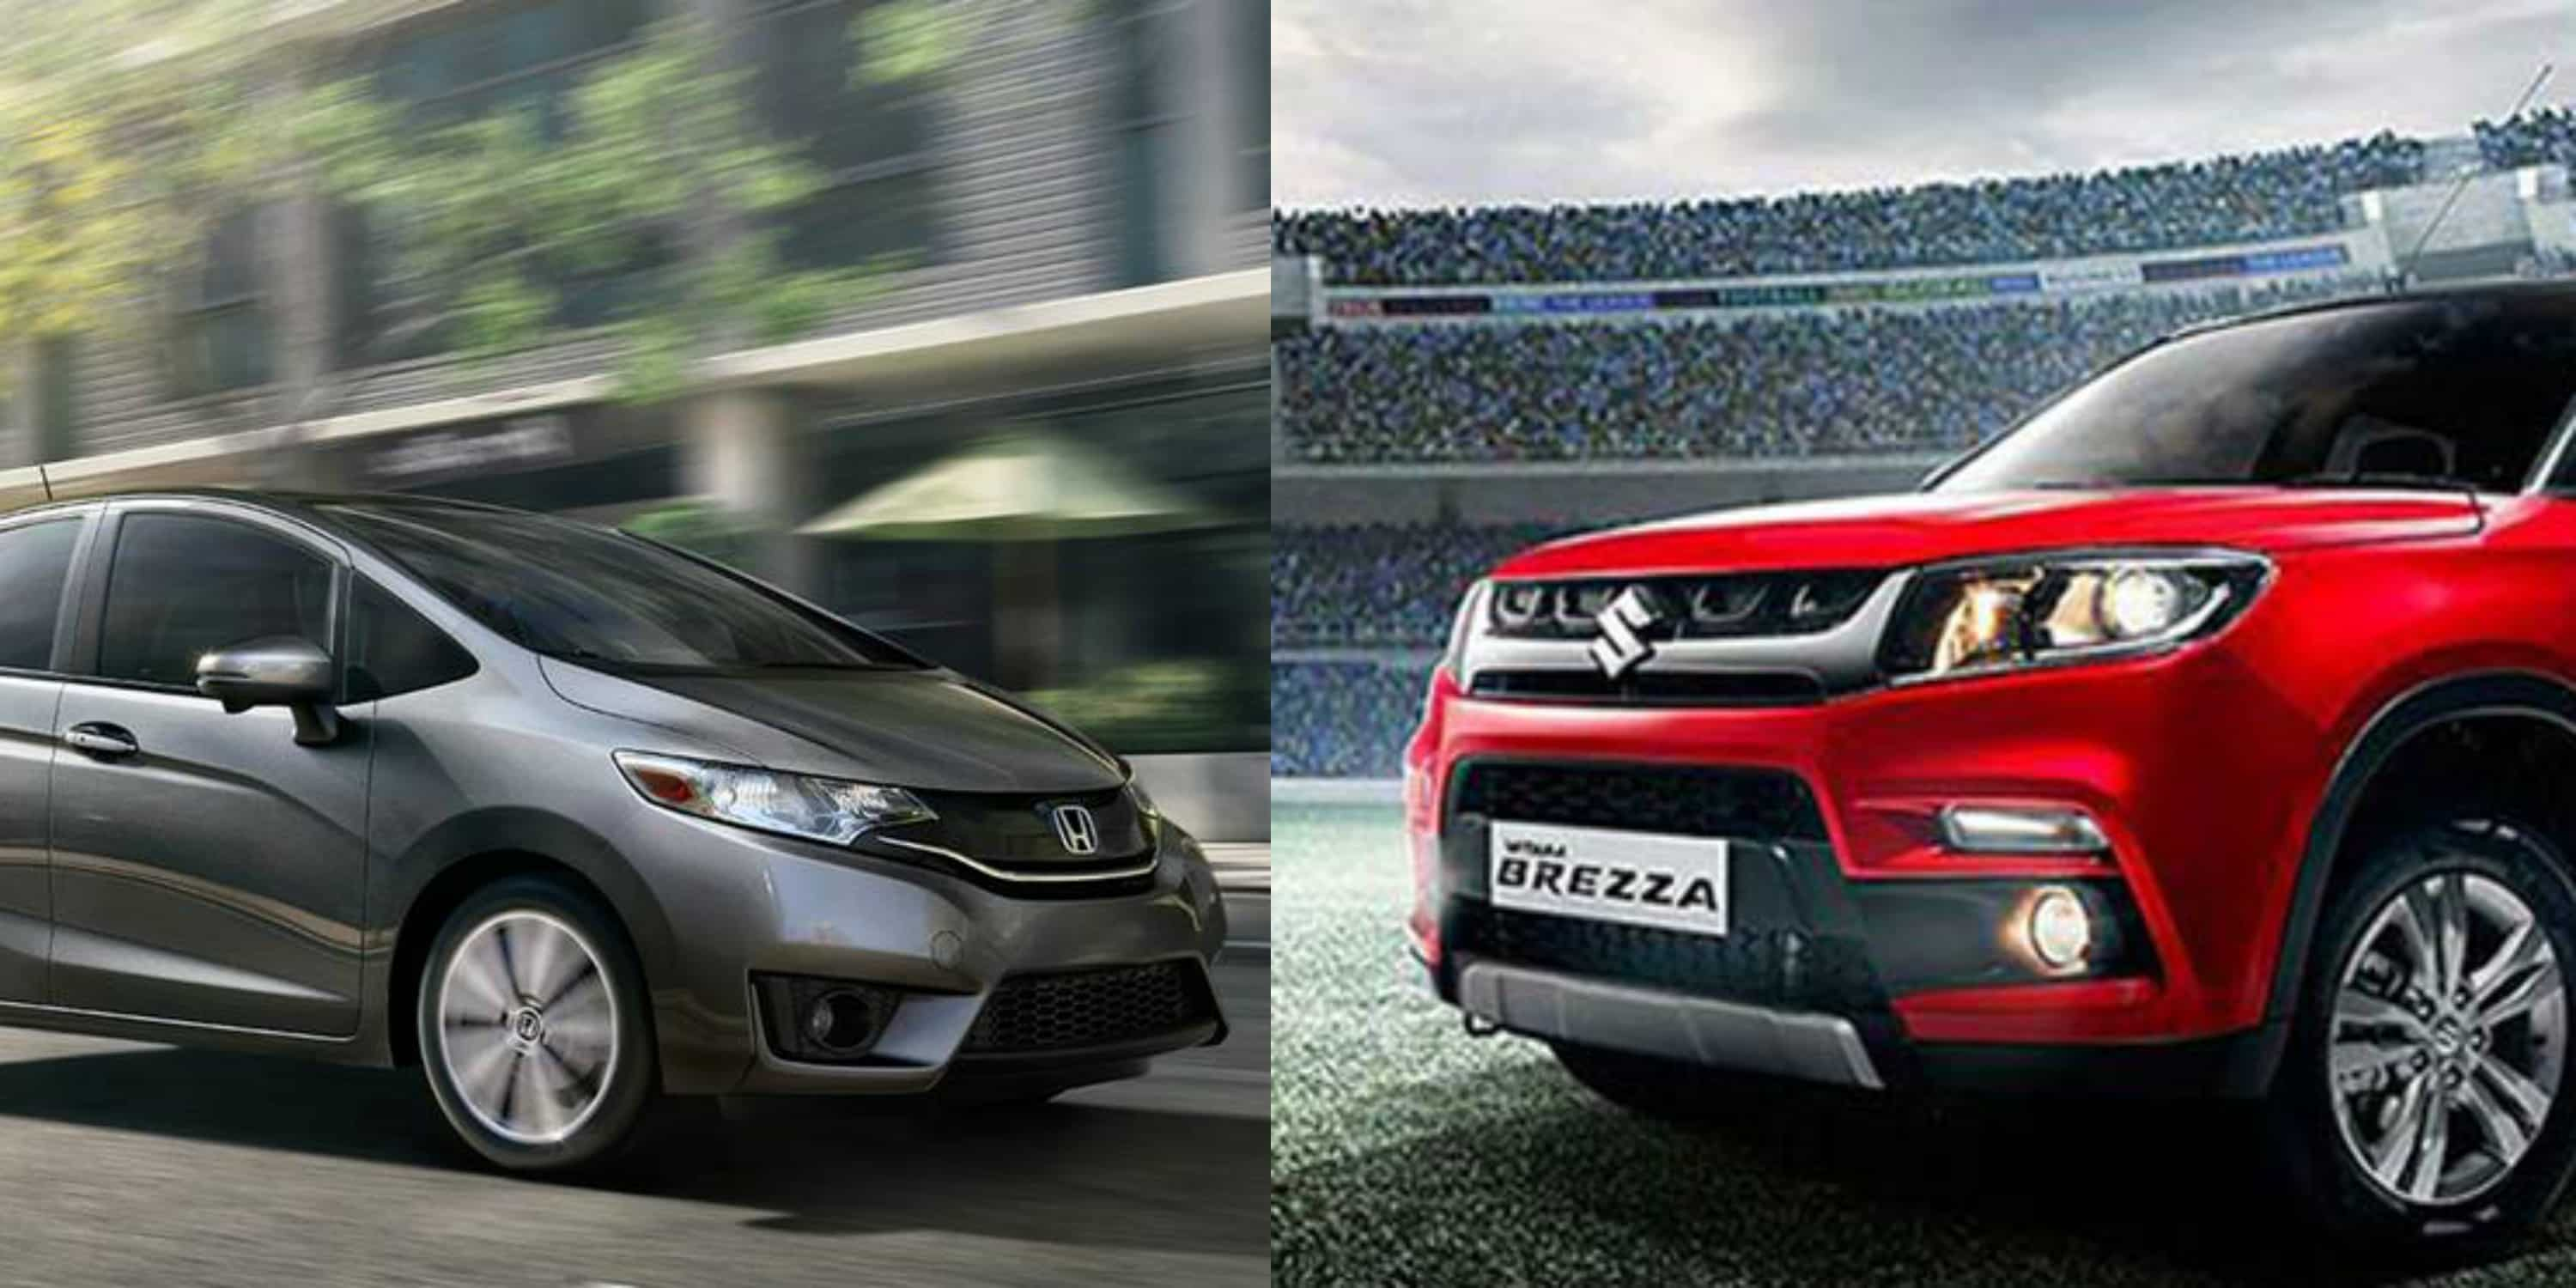 Honda, Maruti best at after-sales customer service: JD Power Survey | Zee Business